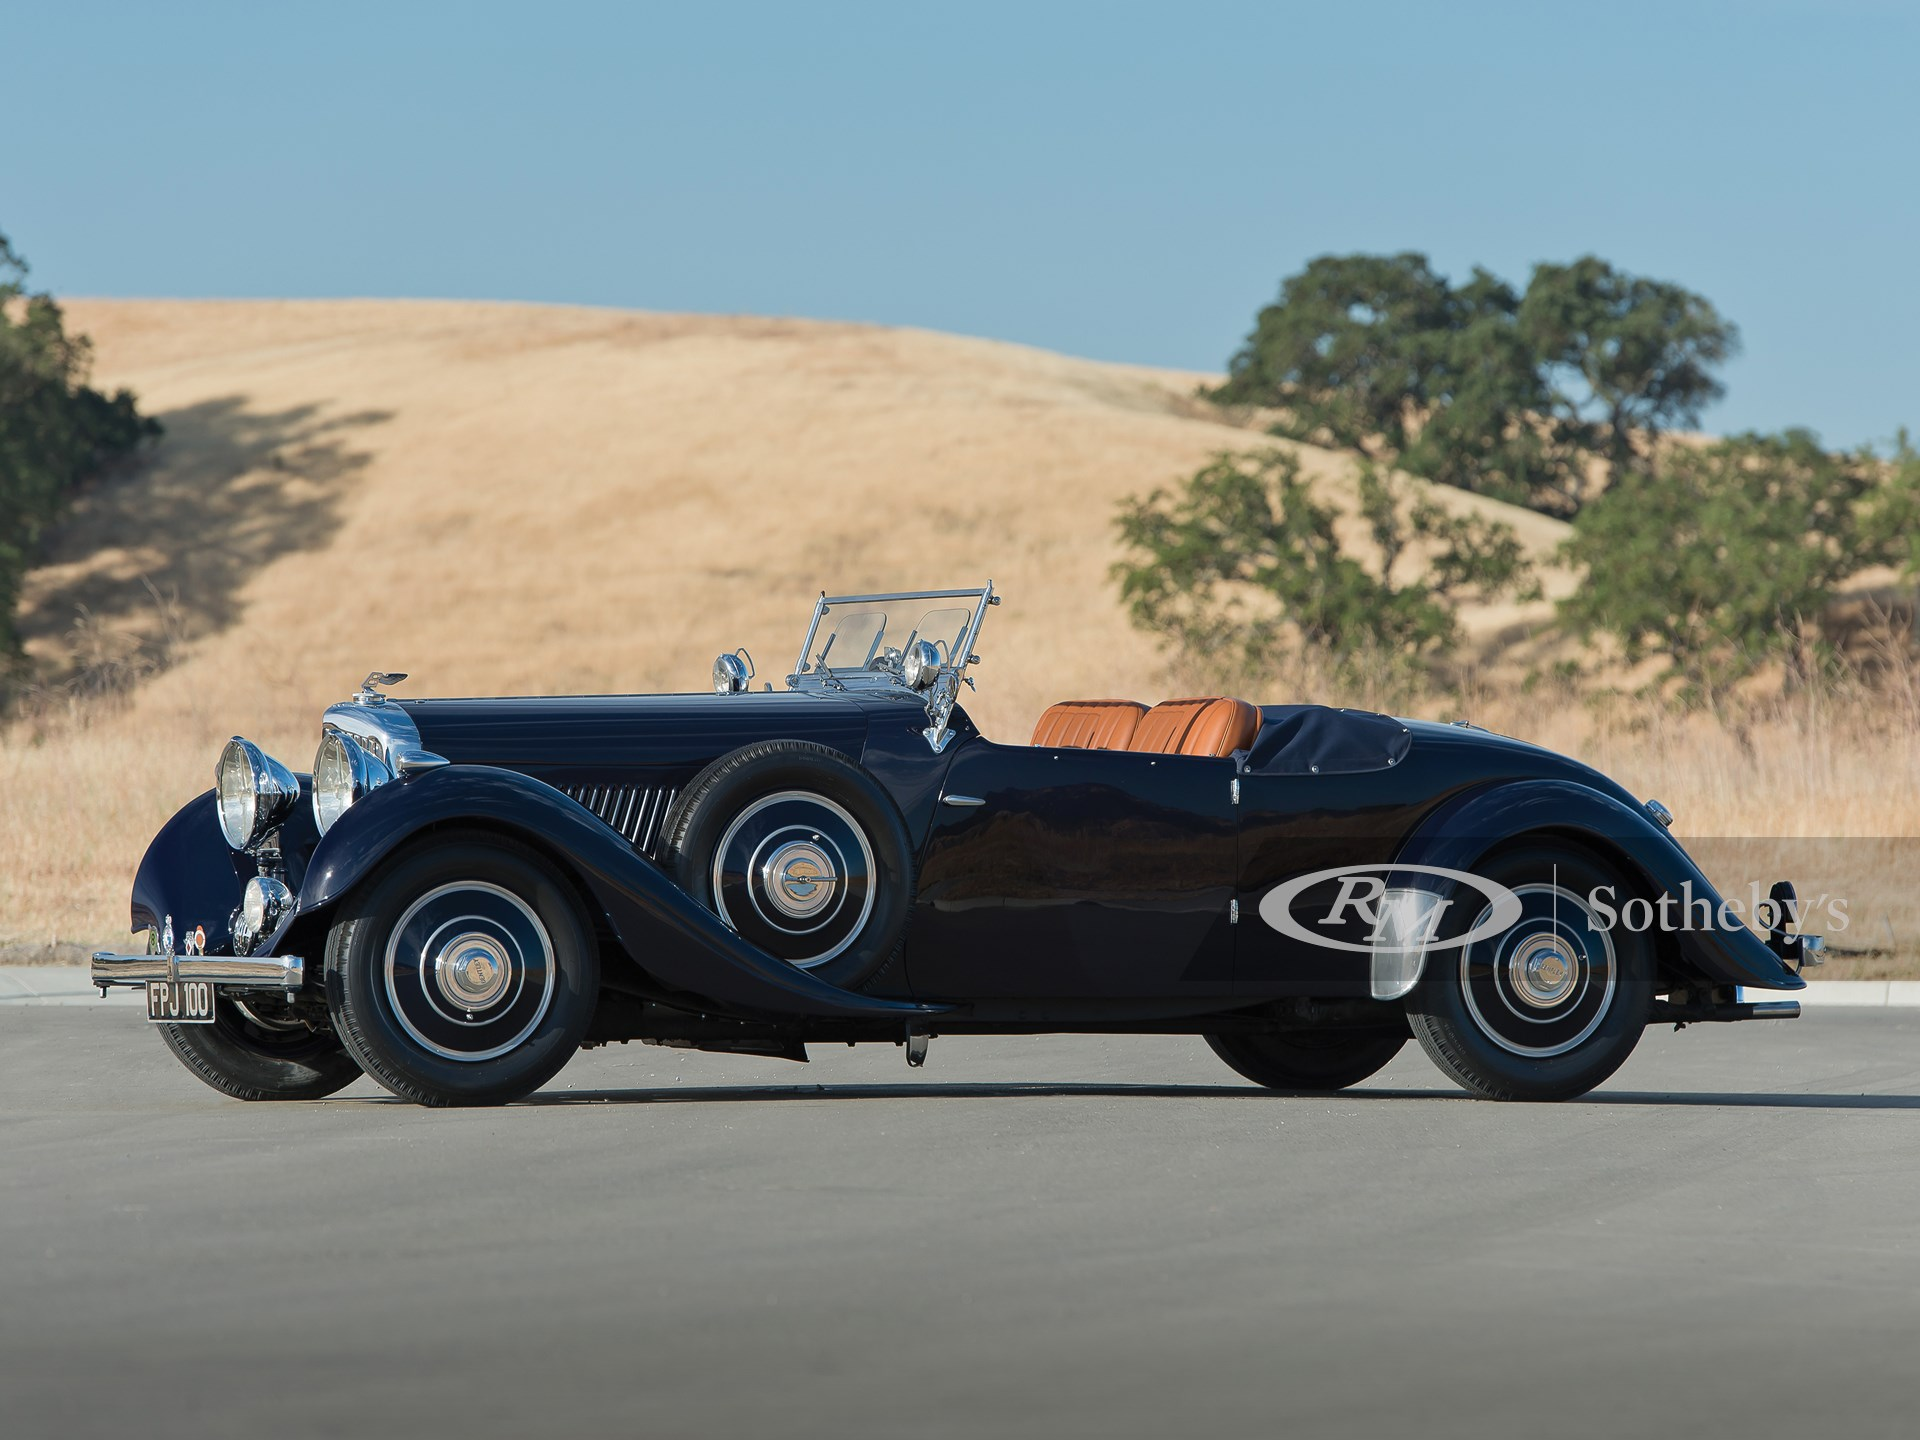 1937 Bentley 4¼-Litre Open Two-Seater by Carlton